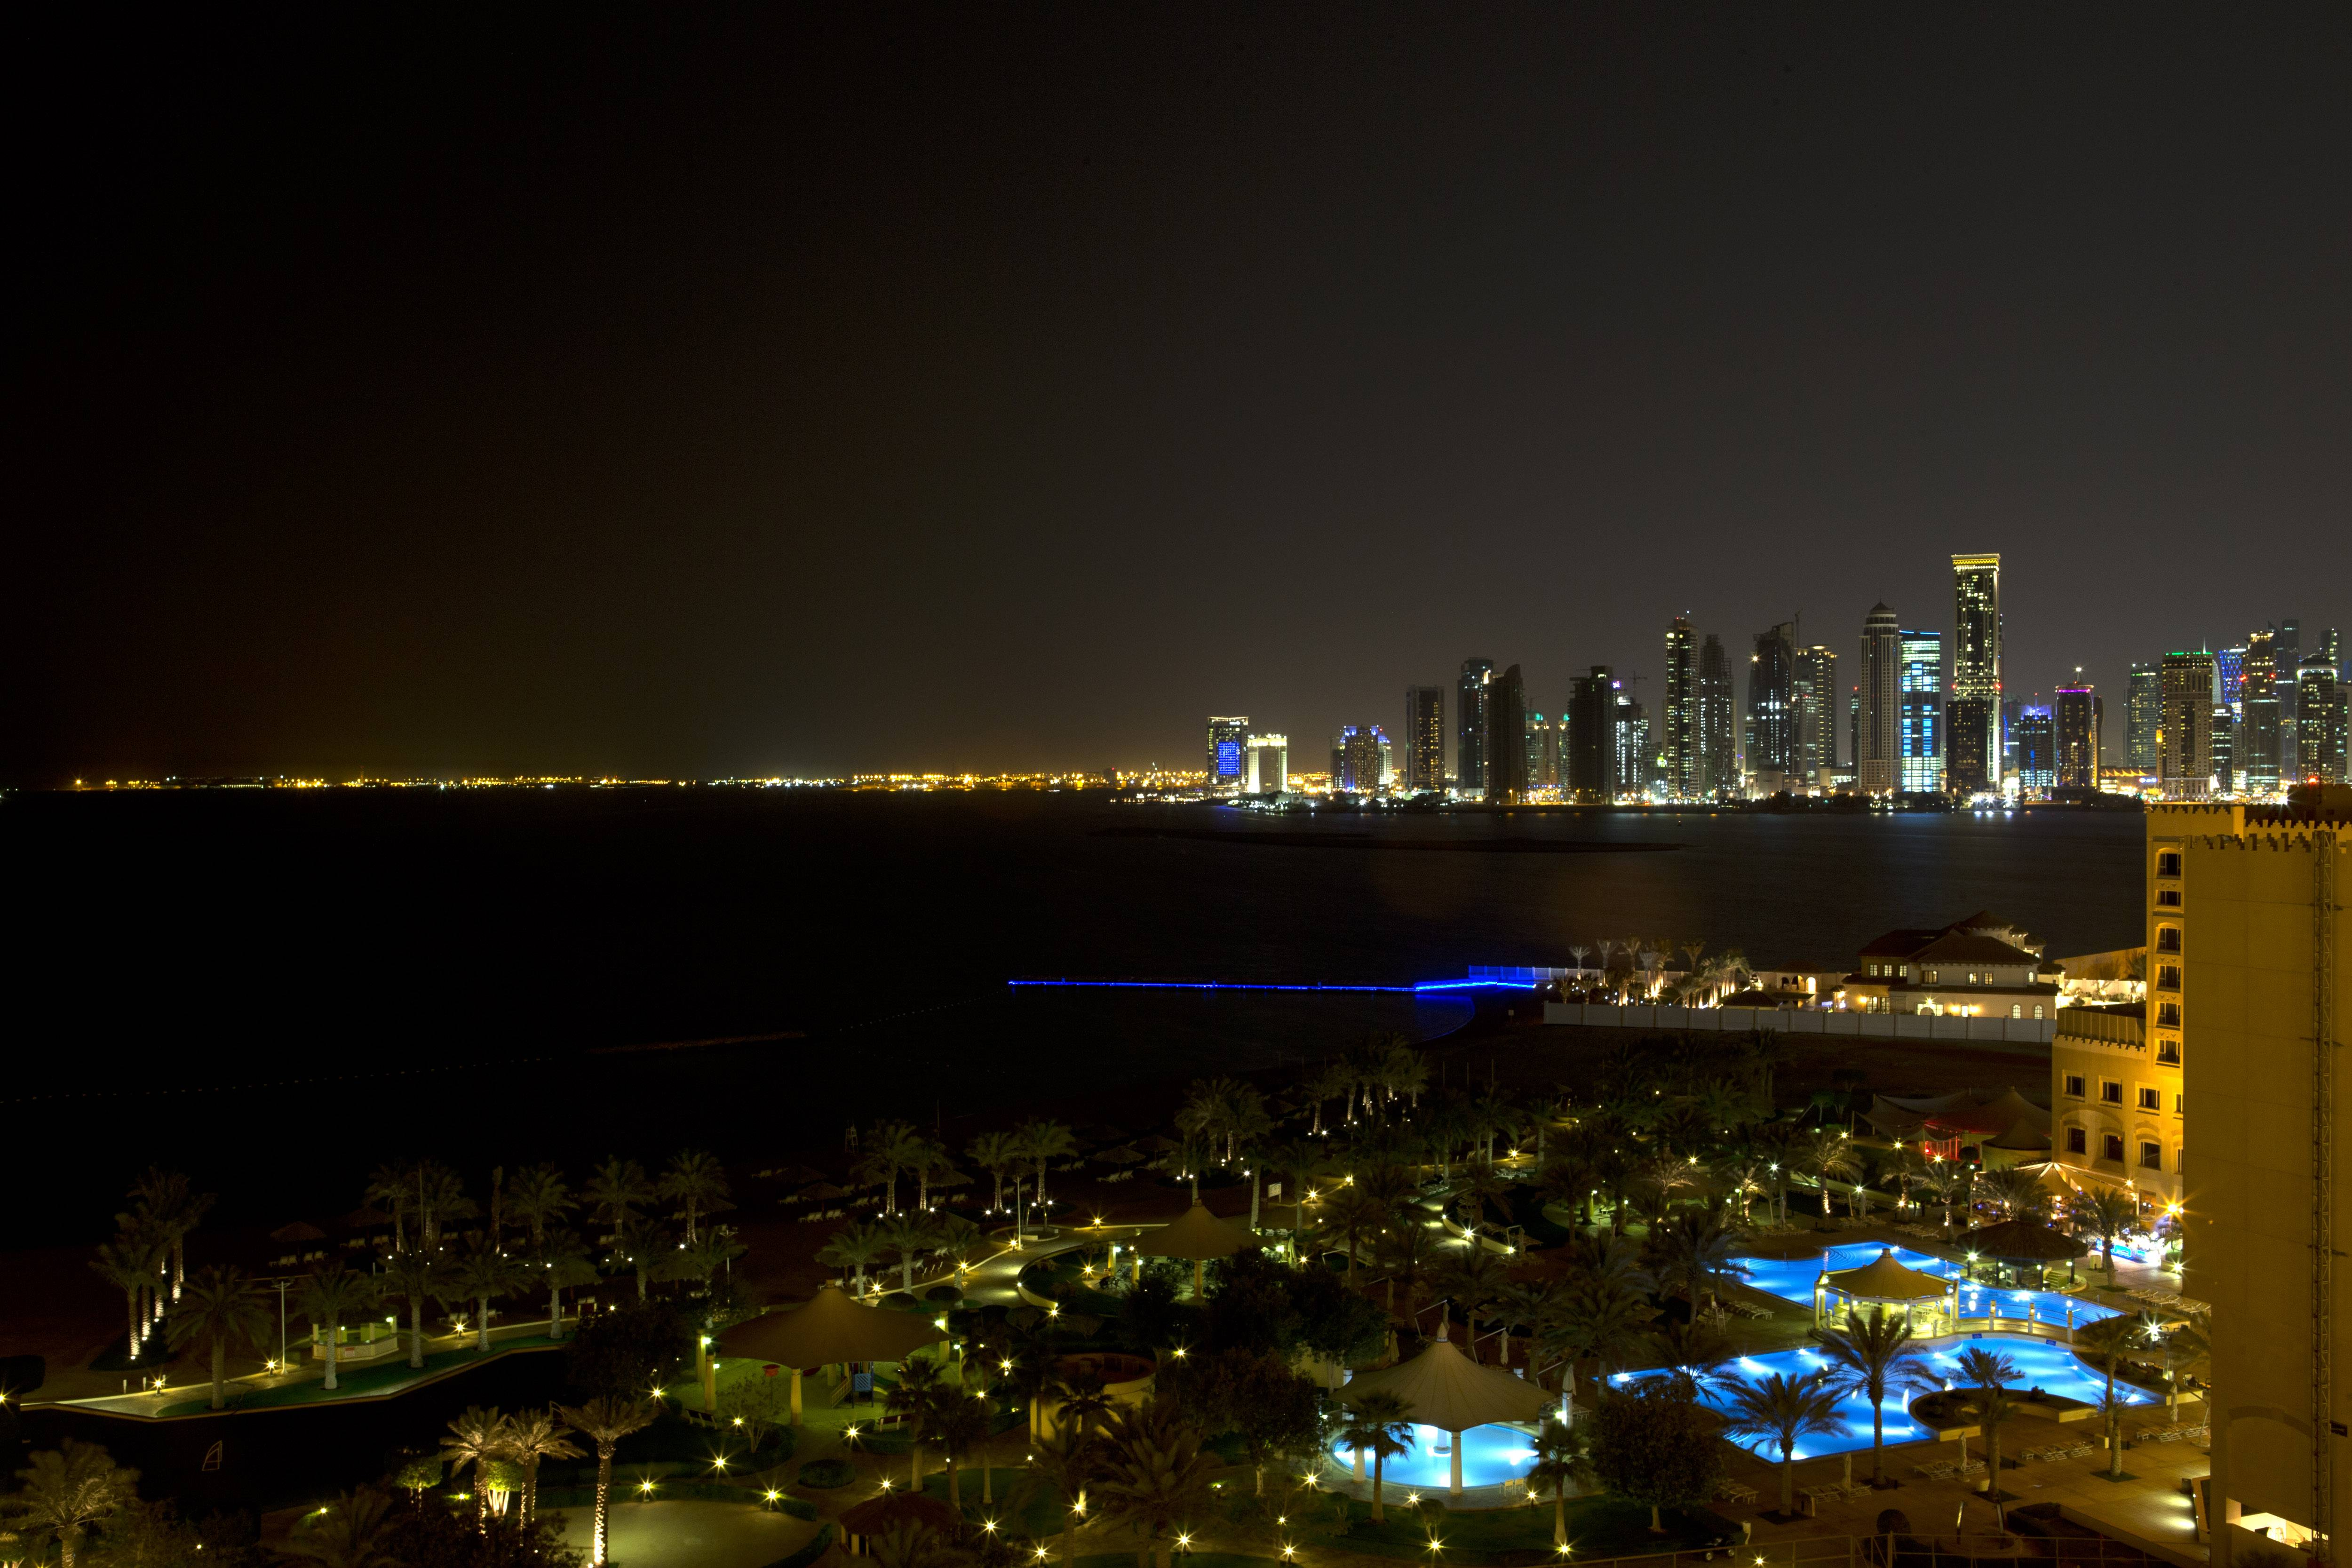 The skyline of Doha, Qatar is seen at night from the St. Regis Hotel. Qatar's behind-the-scenes role in securing the release of U.S. Army Sgt. Bowe Bergdahl June 1, 2014, in exchange for five Taliban operatives was a classic move by a tiny but natural gas-rich Gulf state with outsize ambitions.